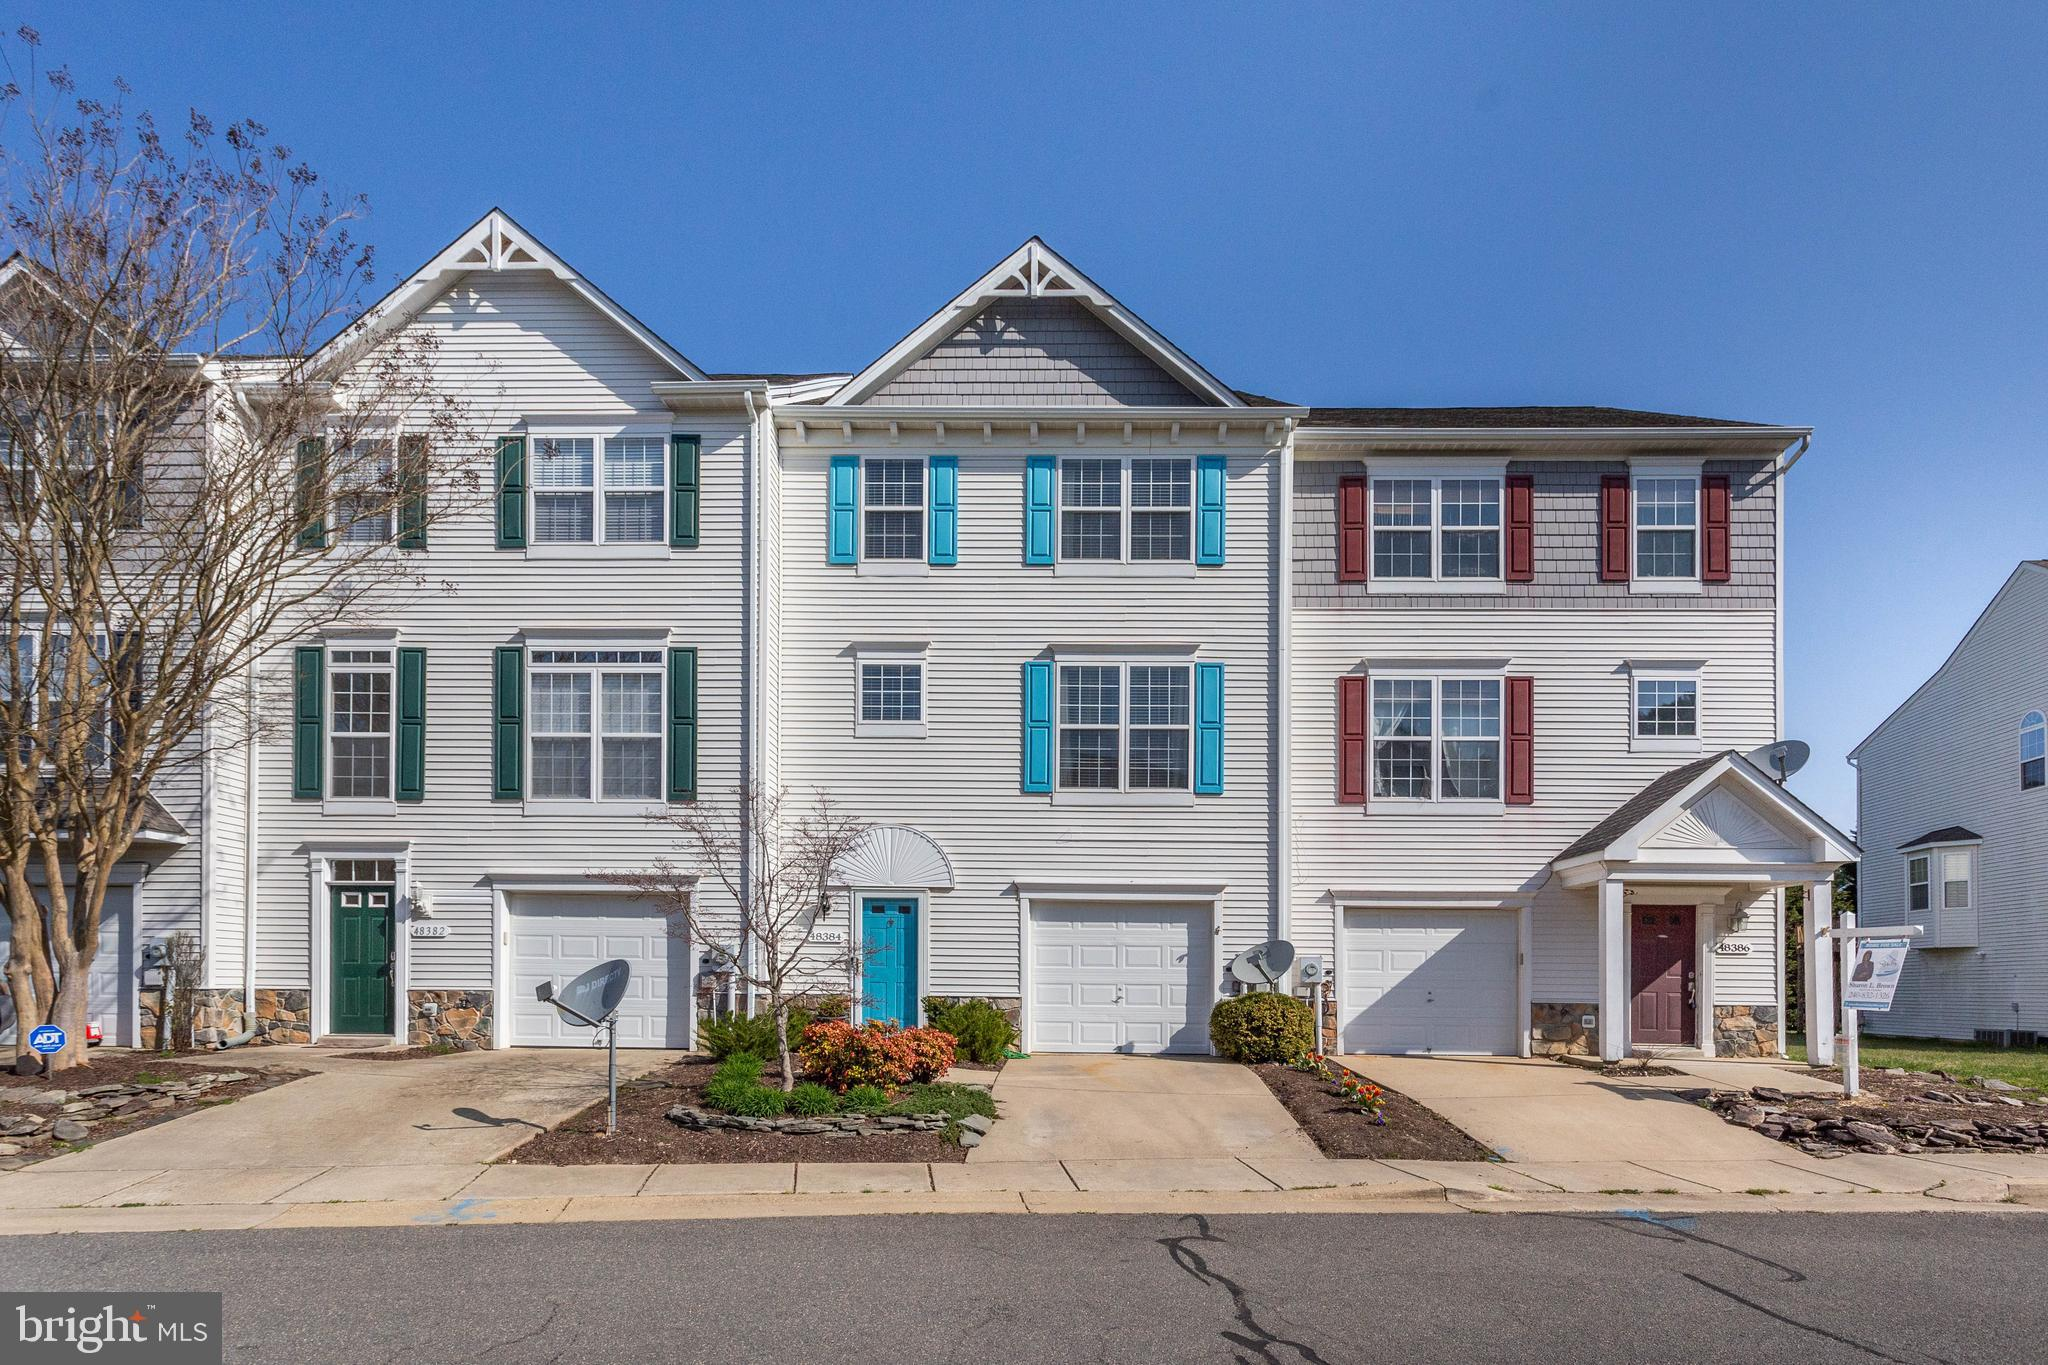 48384 SUNBURST DRIVE, LEXINGTON PARK, Maryland 20653, 3 Bedrooms Bedrooms, ,5 BathroomsBathrooms,Townhouse,For Sale,48384 SUNBURST DRIVE,MDSM174476